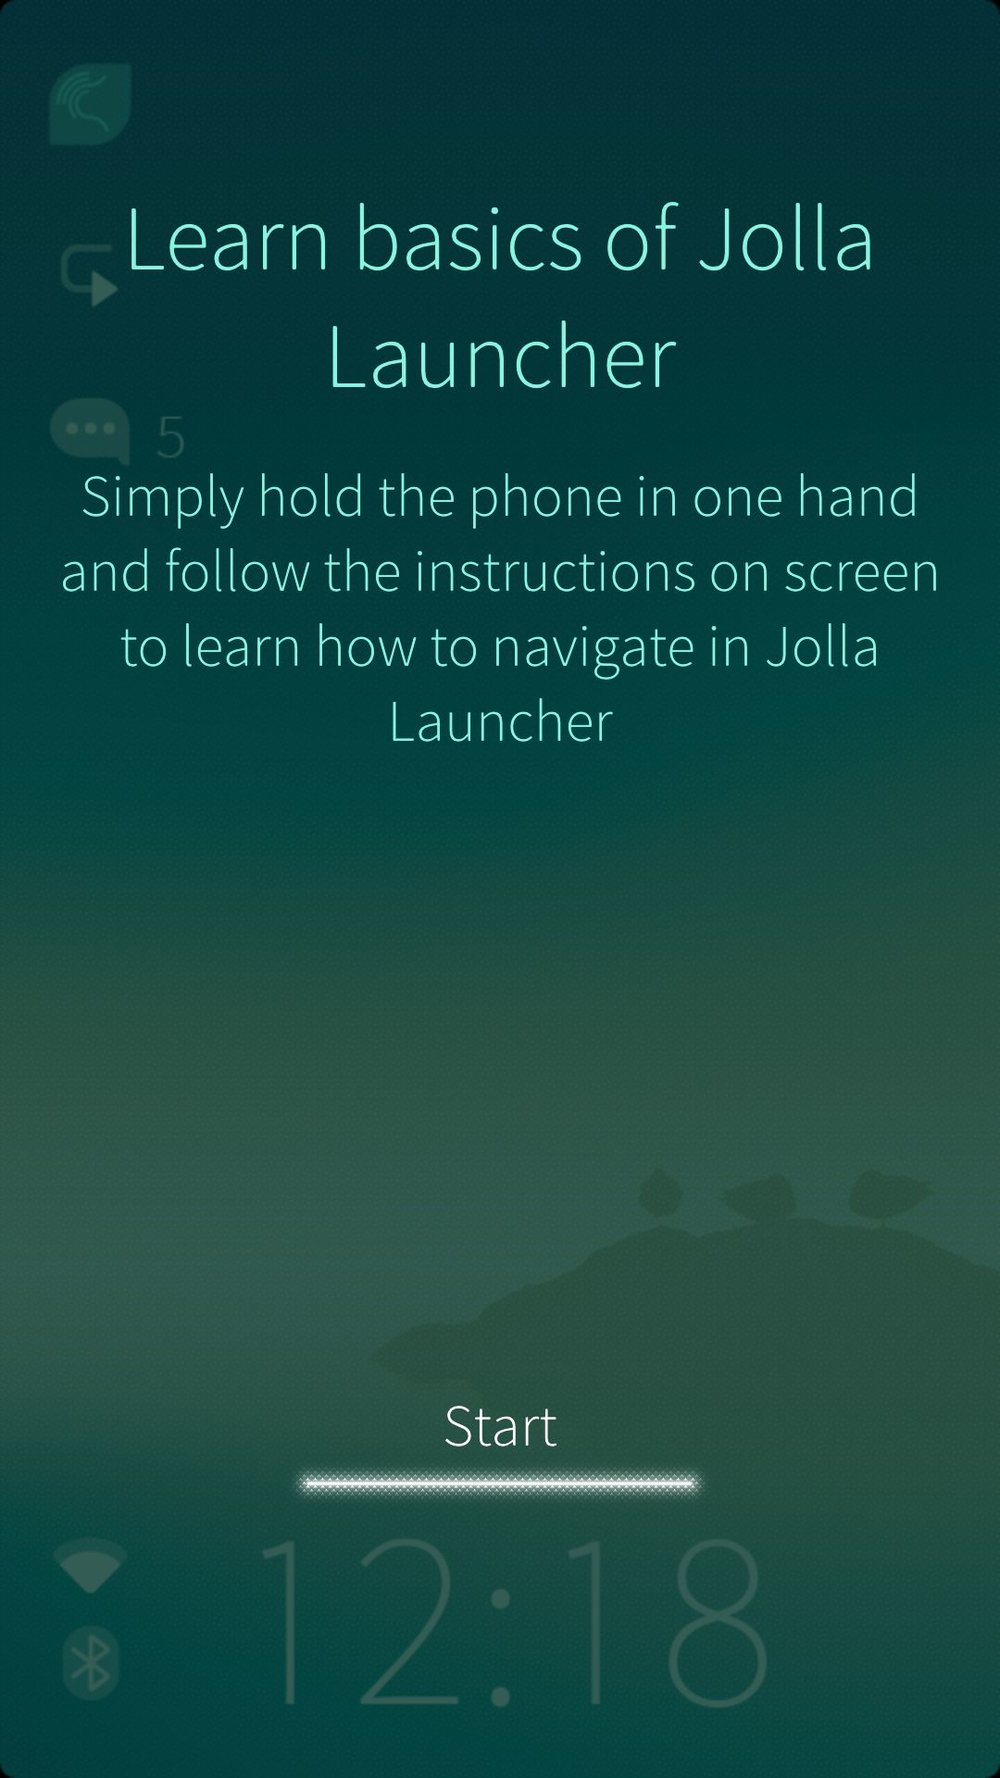 Jolla-Launcher-for-Android-4.2.jpg